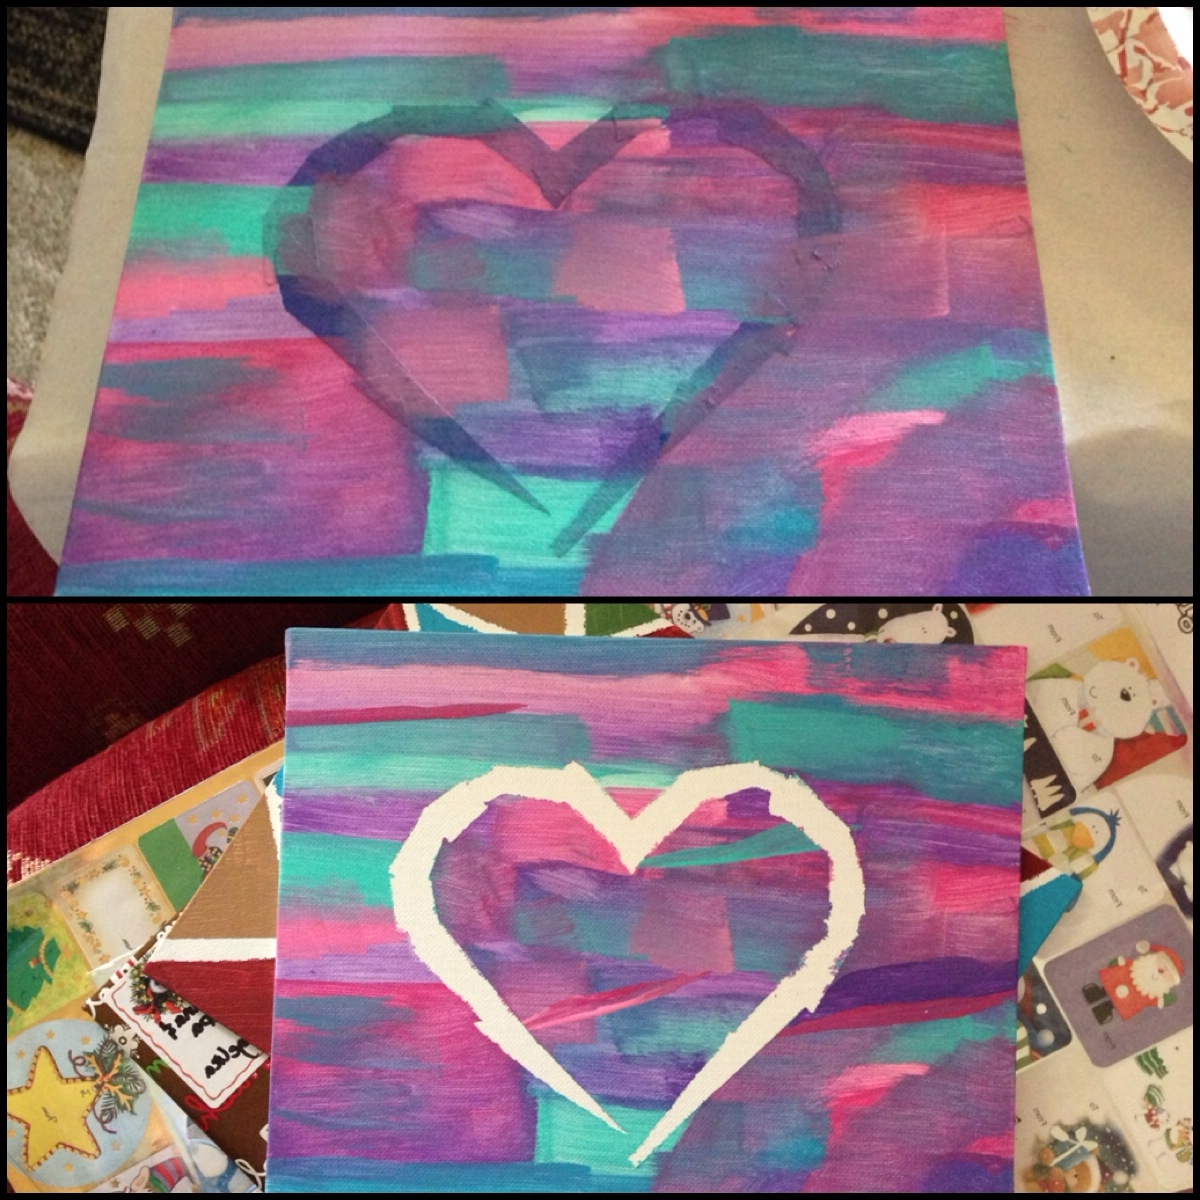 Best And Newest Diy Pinterest Canvas Art Intended For Diy Canvas Art. Painters Tape, Paint, And Sponge Brushes (View 2 of 15)